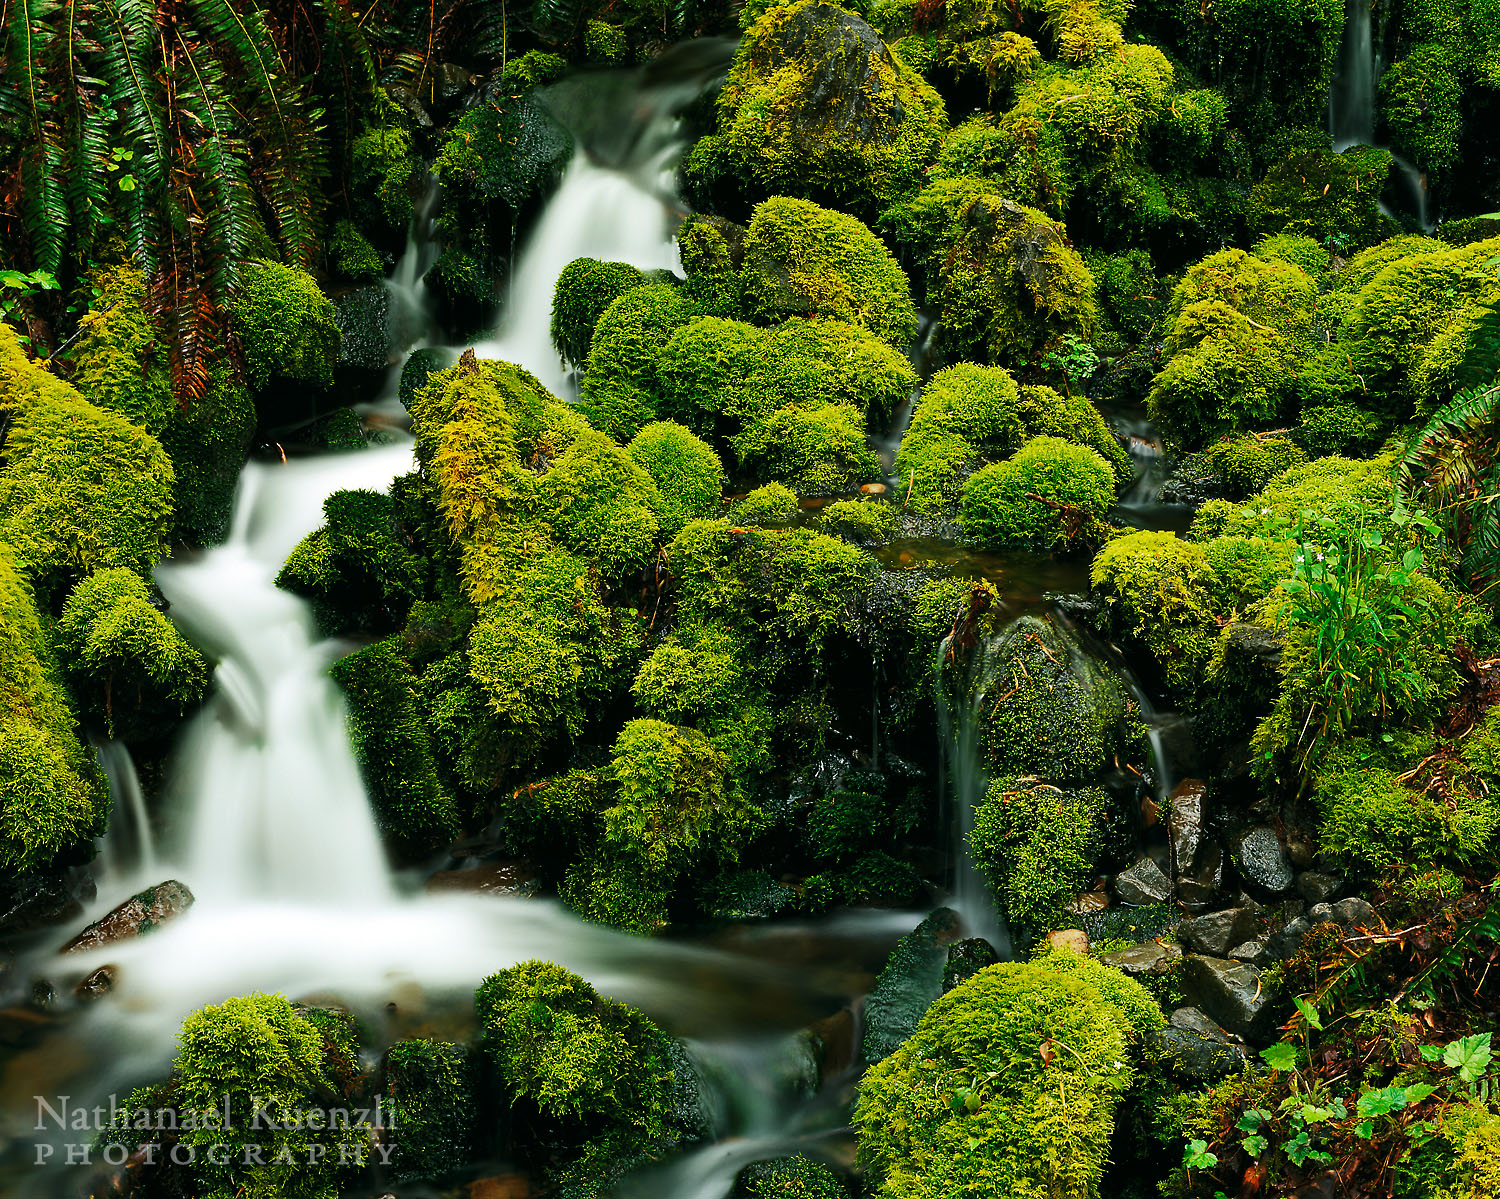 Water and Moss, Olympic National Park, Washington, May 2007